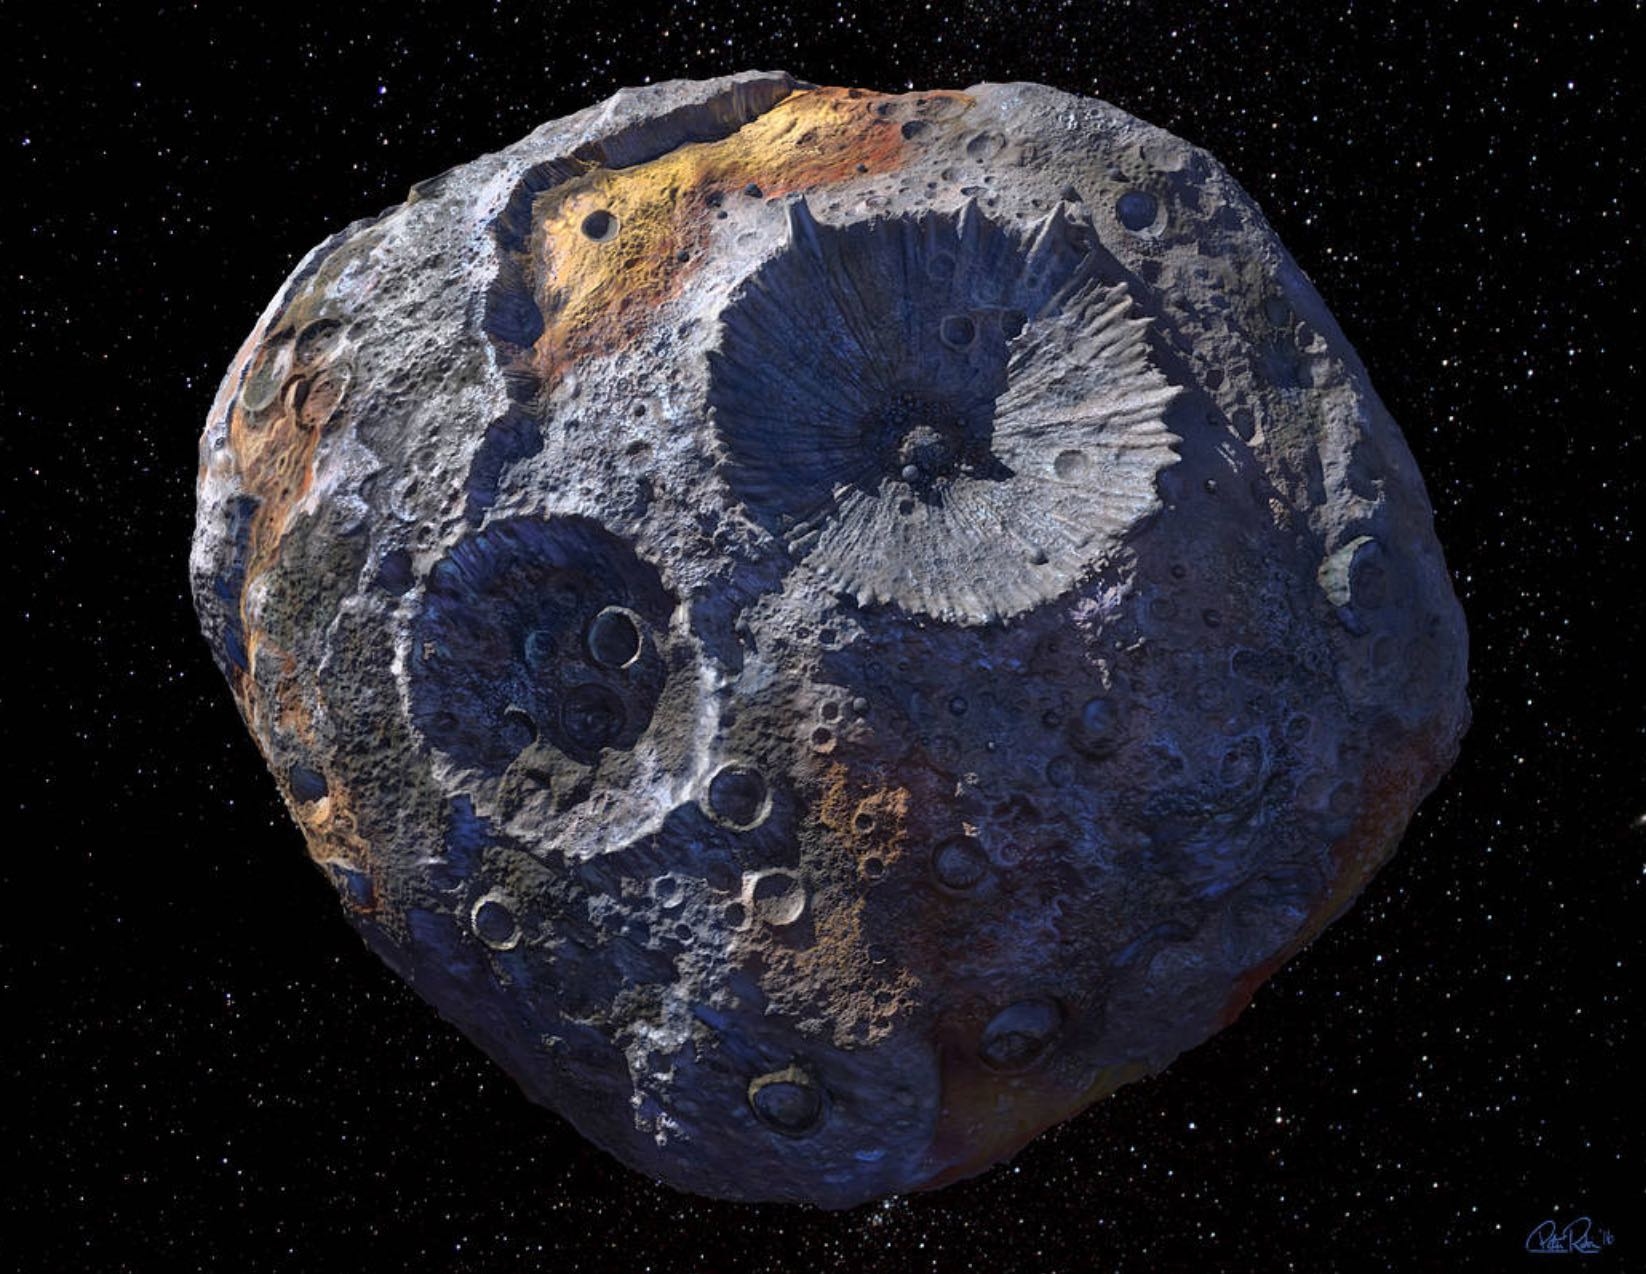 Unusual asteroid could be worth $10,000 quadrillion